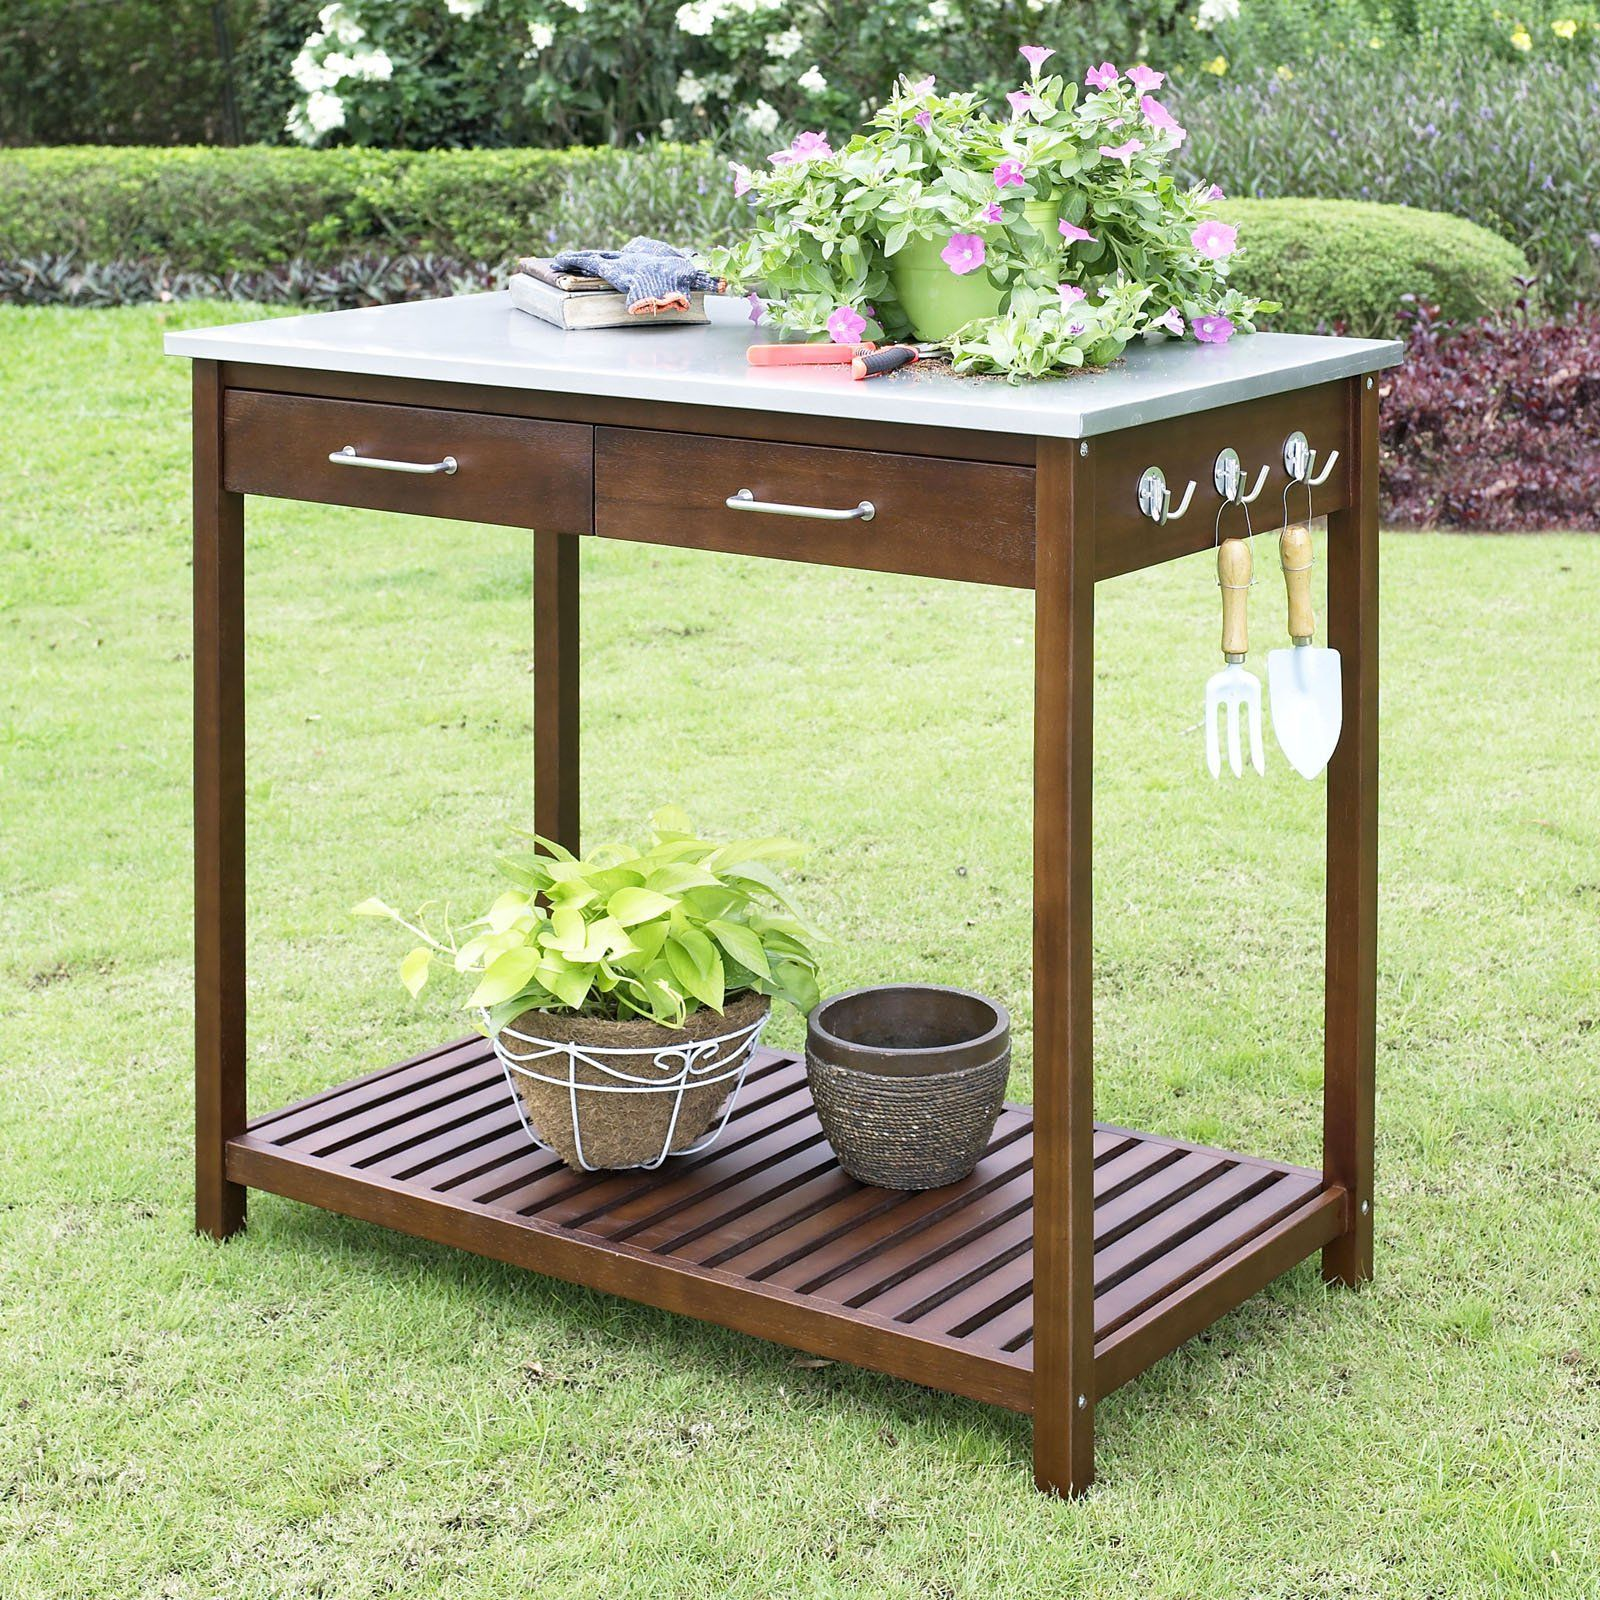 Planting Tables For Sale Belham Living Winfield Potting Table 39w X 22d X 36h In In 2019